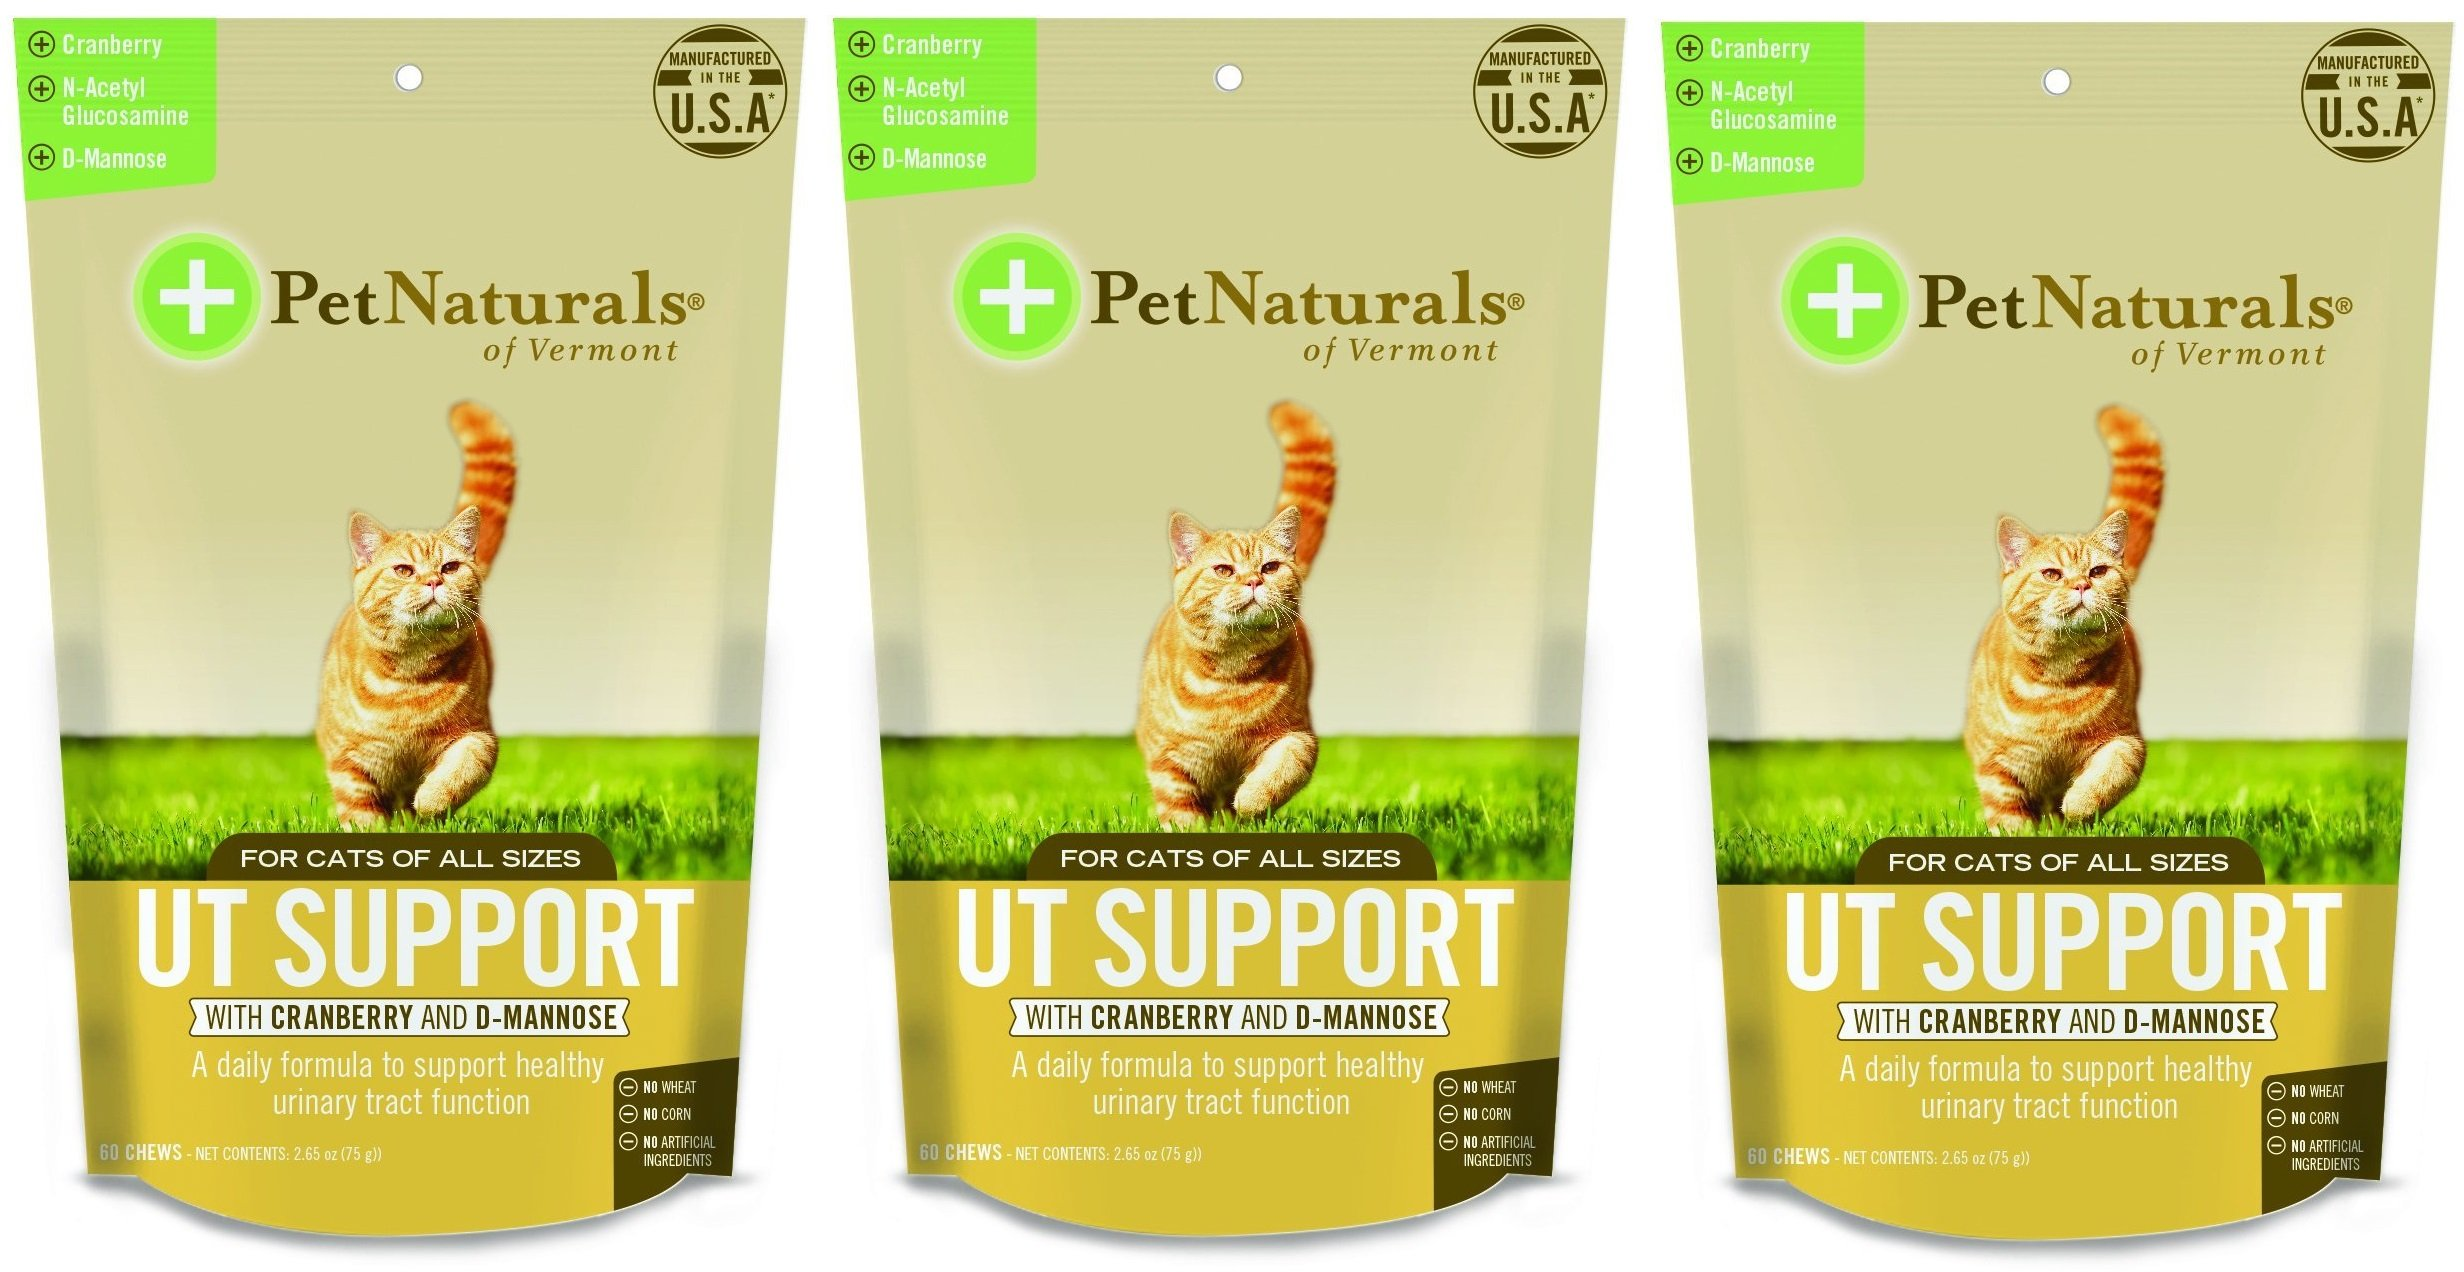 (3 Pack) Pet Natural's of Vermont 60 Count Urinary Tract Support Supplement Soft Chews for Cats by Pet Naturals